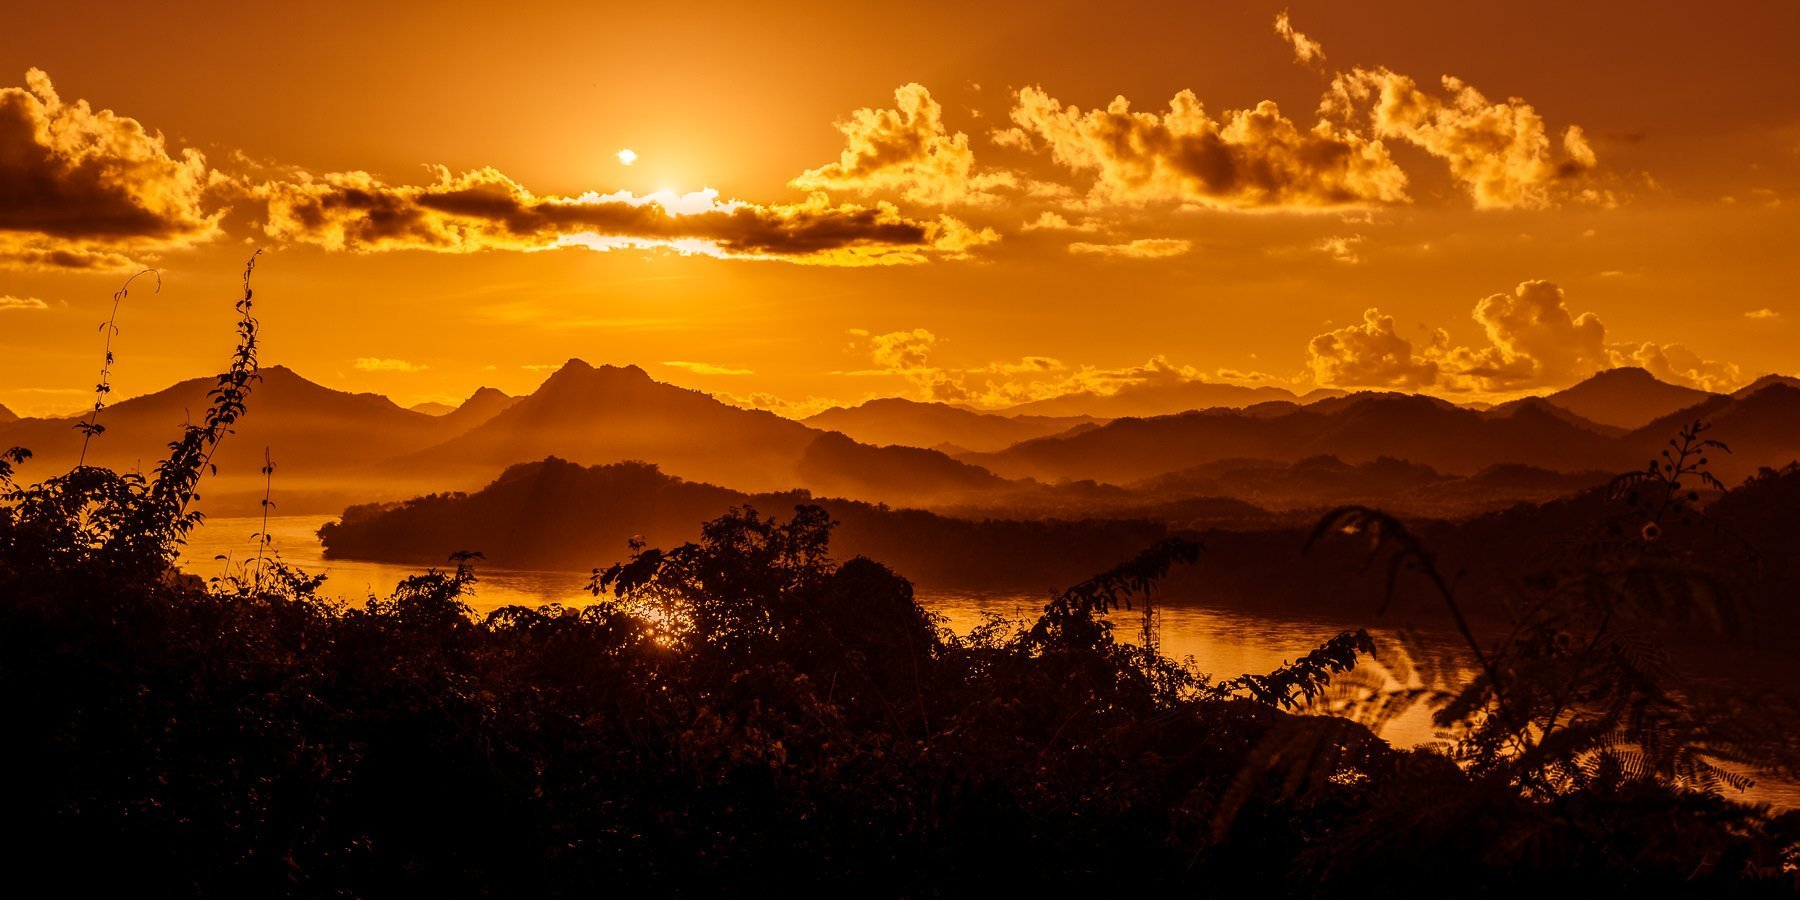 Golden sunlight over the mountainside with the Mekong river winding through the valley in Laos